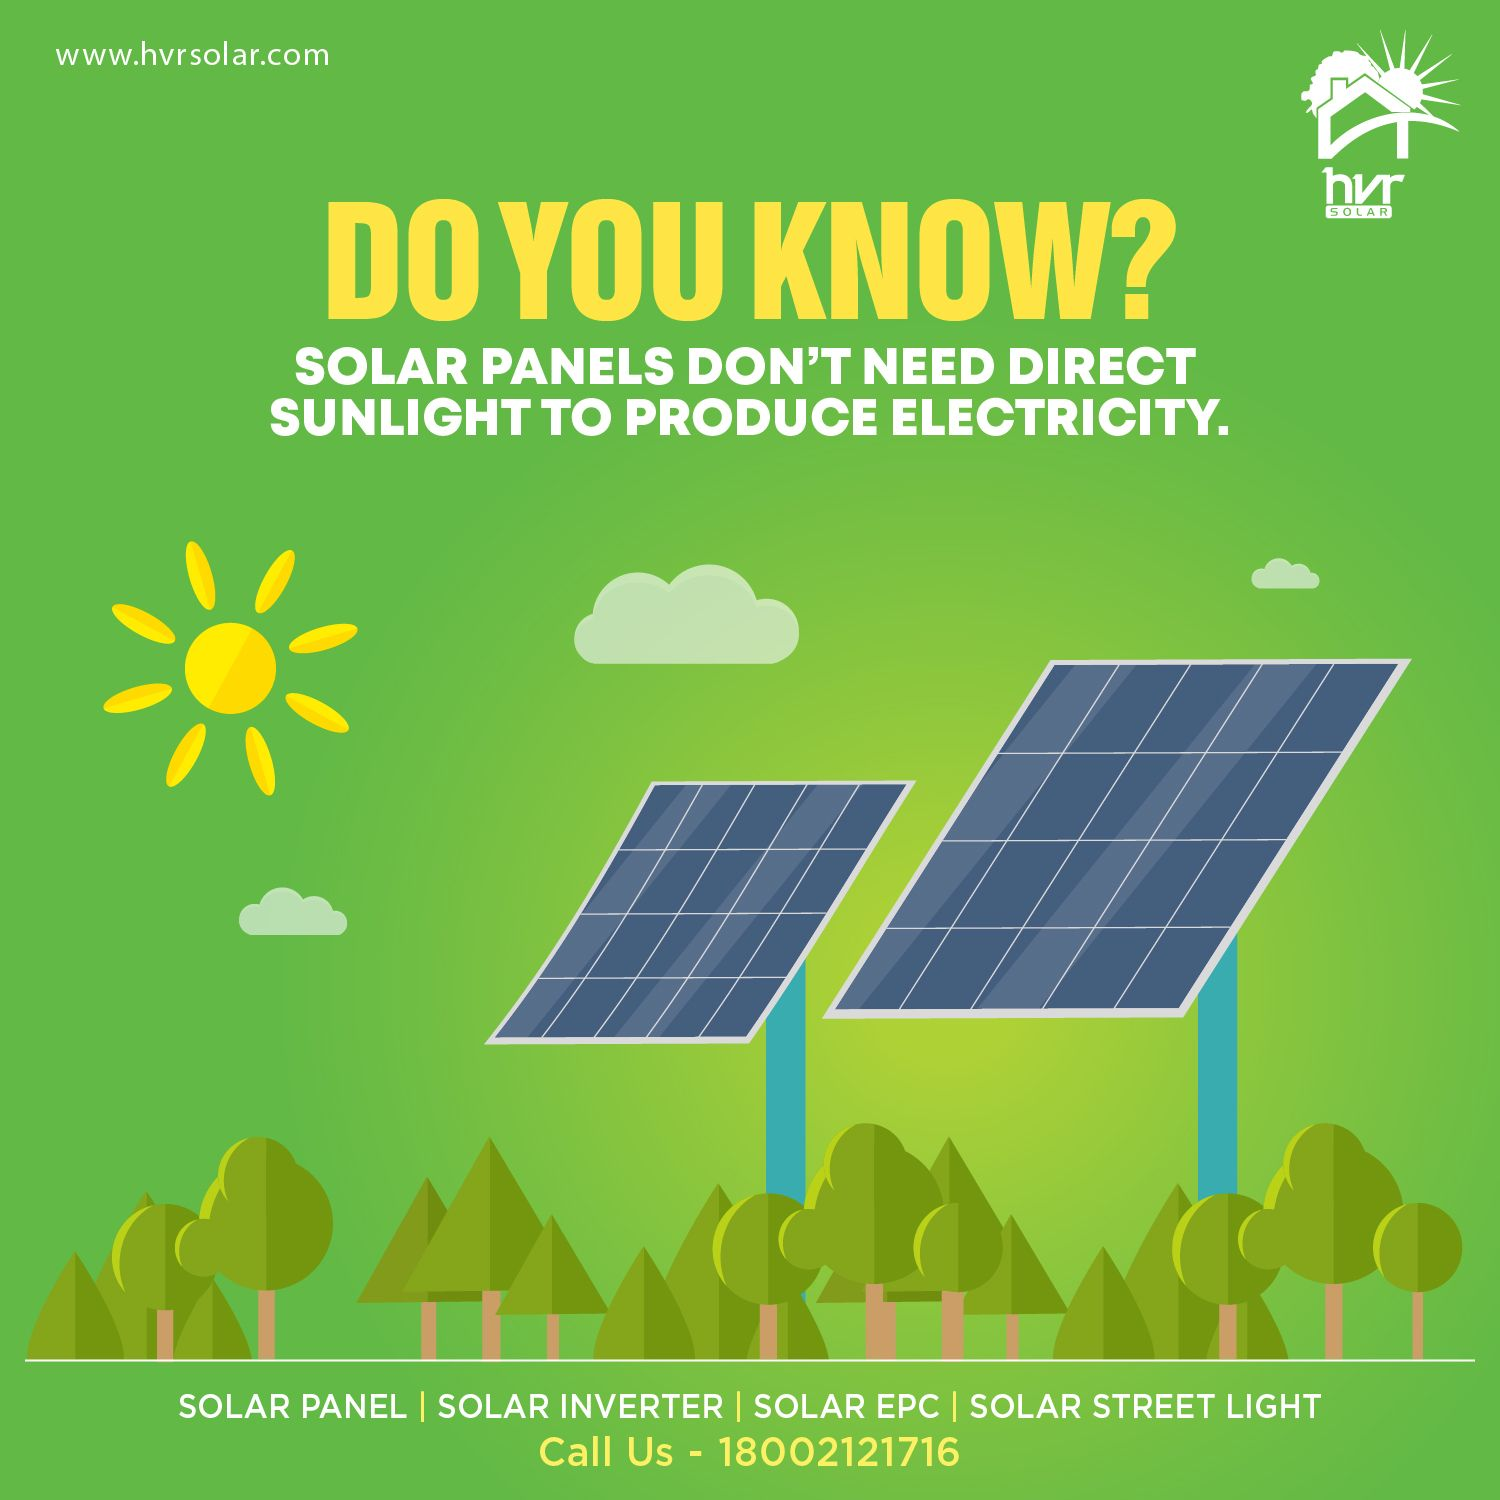 Though Through Direct Sunlight Solar Panels Produce More Solar Energy But They Can Still Produce Electricity I In 2020 Solar Panels Facts Solar Energy Solar Companies